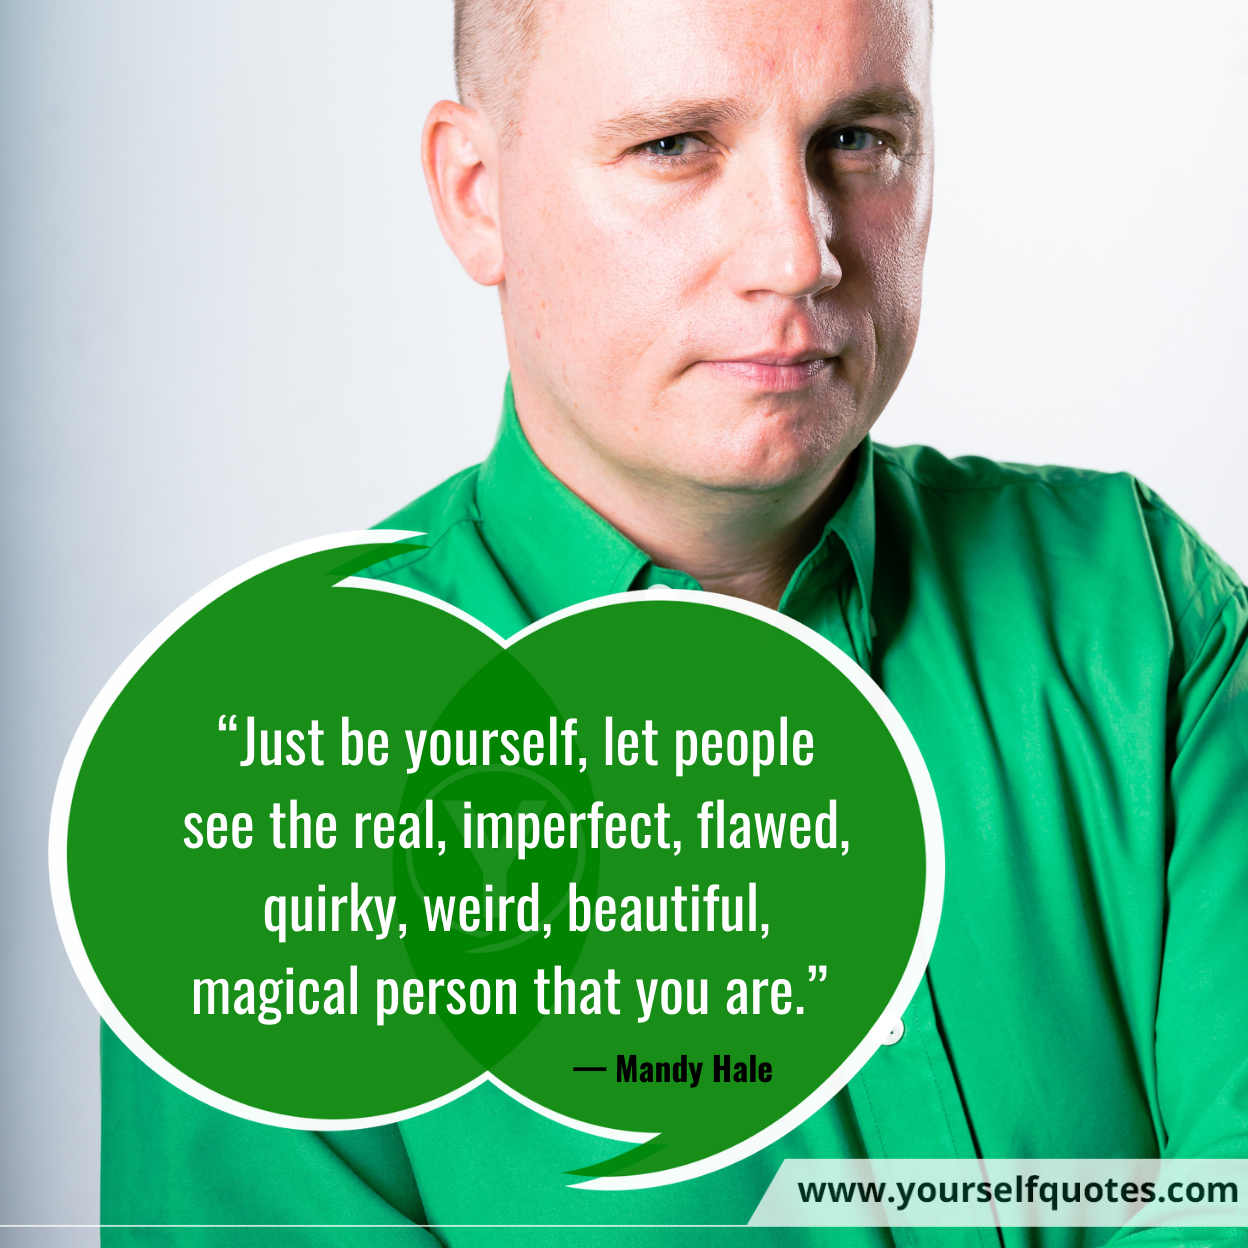 Be Yourself Quotes oleh Mandy Hale